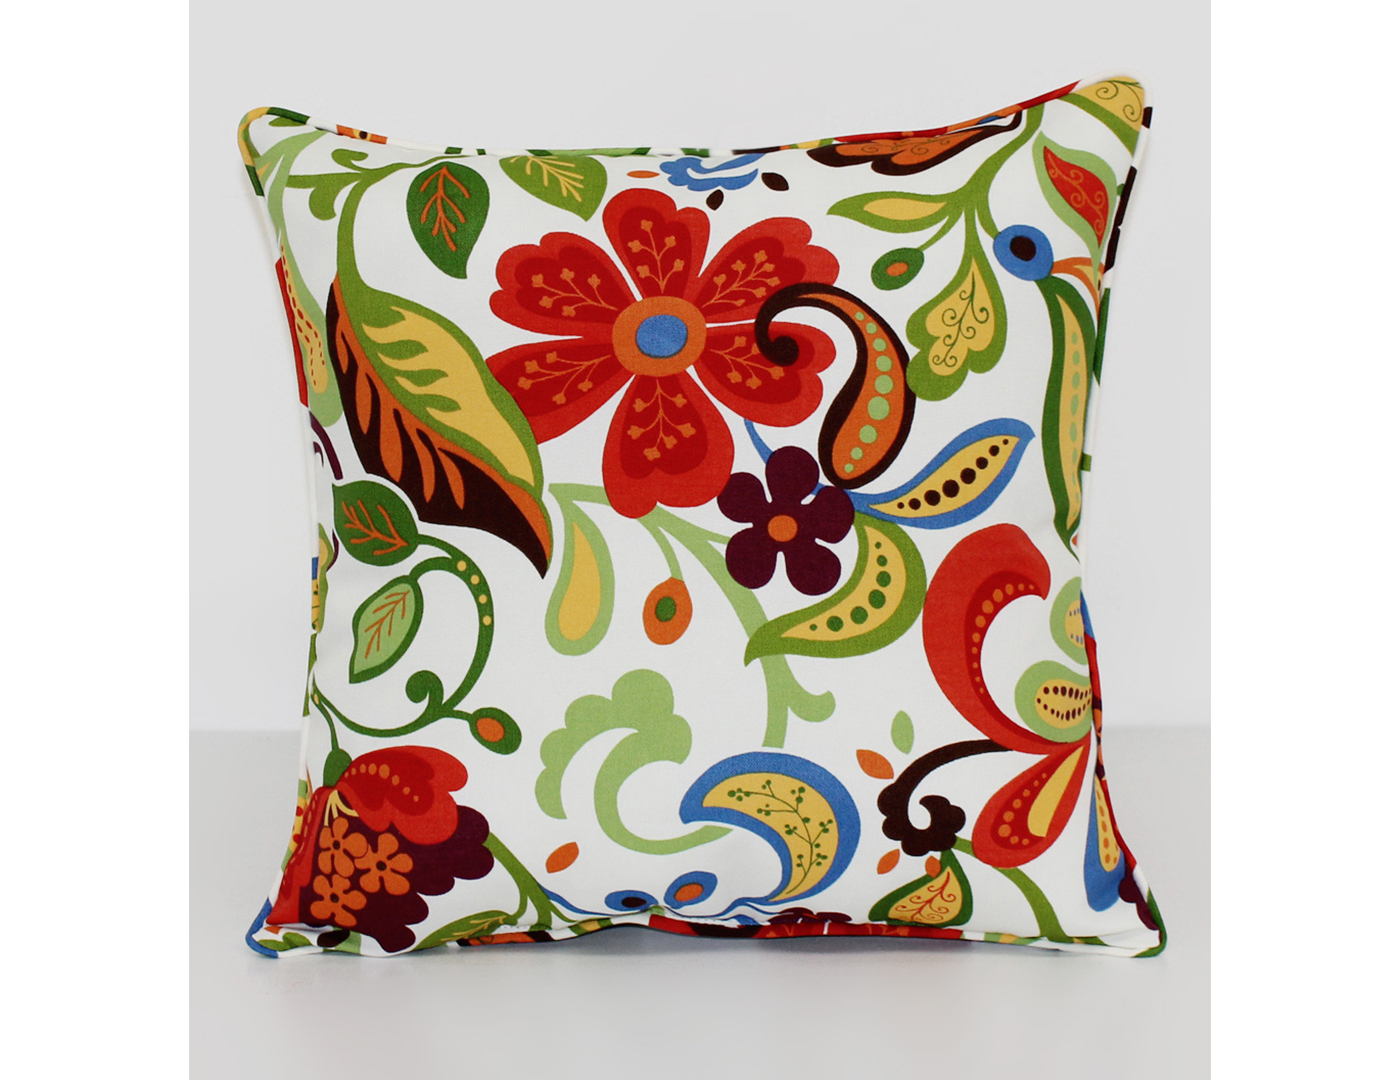 Wildwood Garden Outdoor Pillow